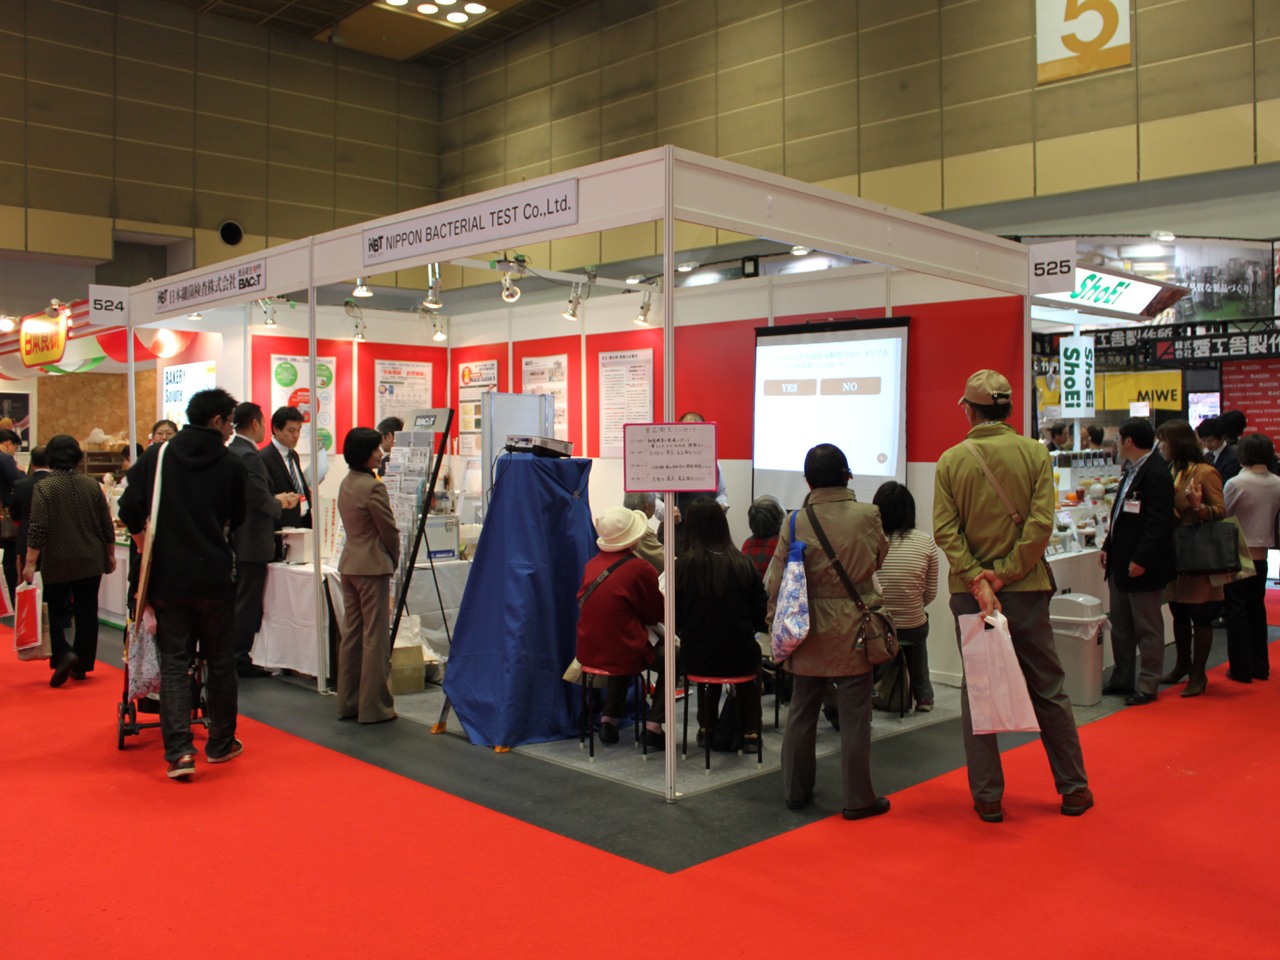 MOBAC SHOW 2013(第23回国際製パン製菓関連産業展)